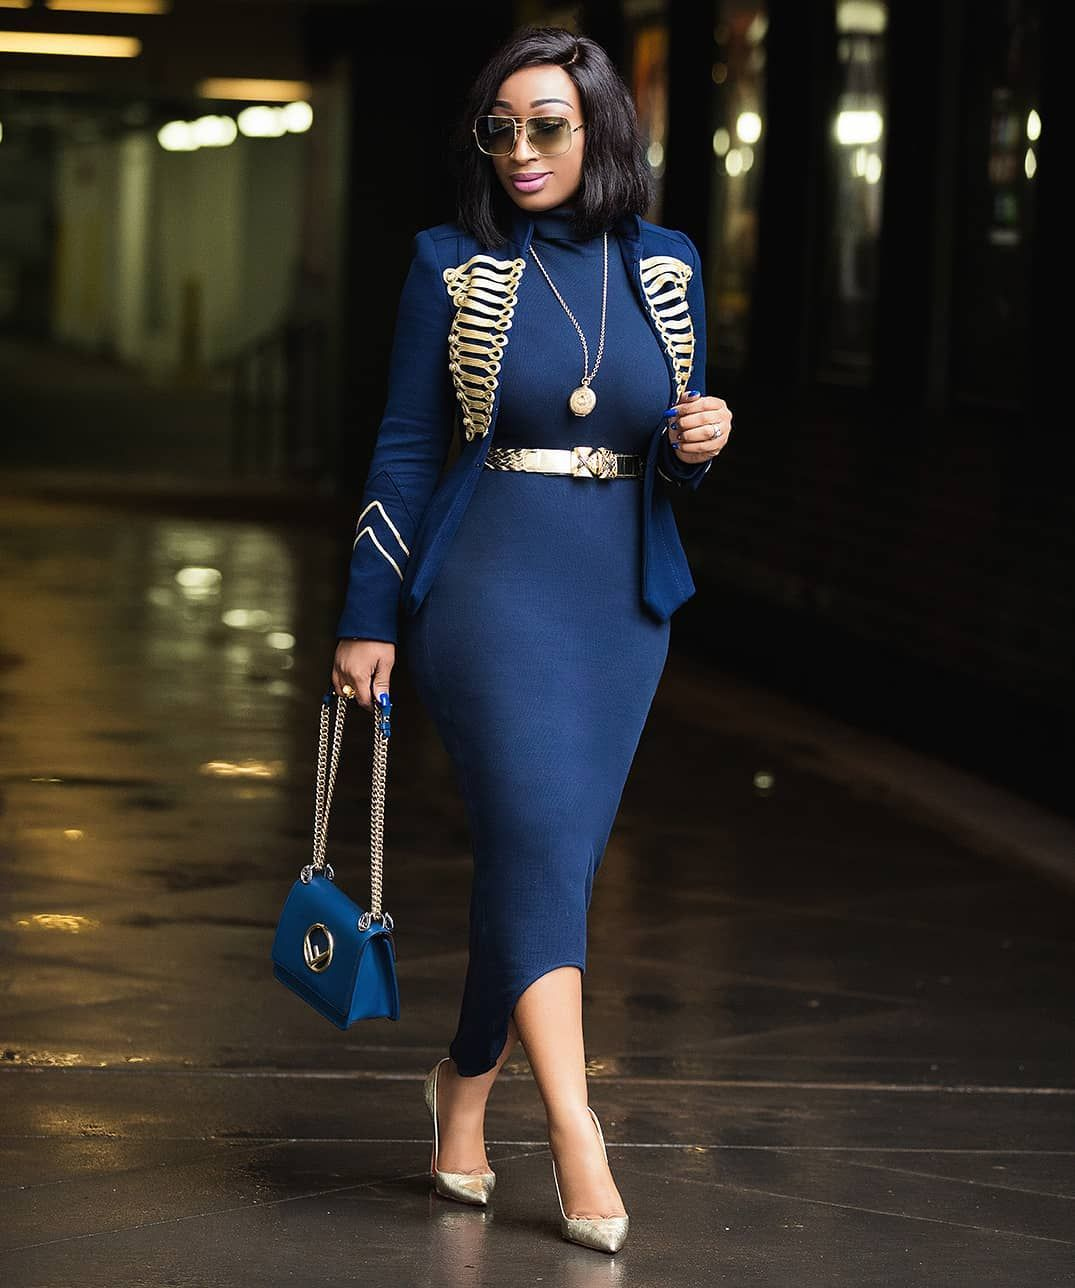 Image result for tips on how to dress classy